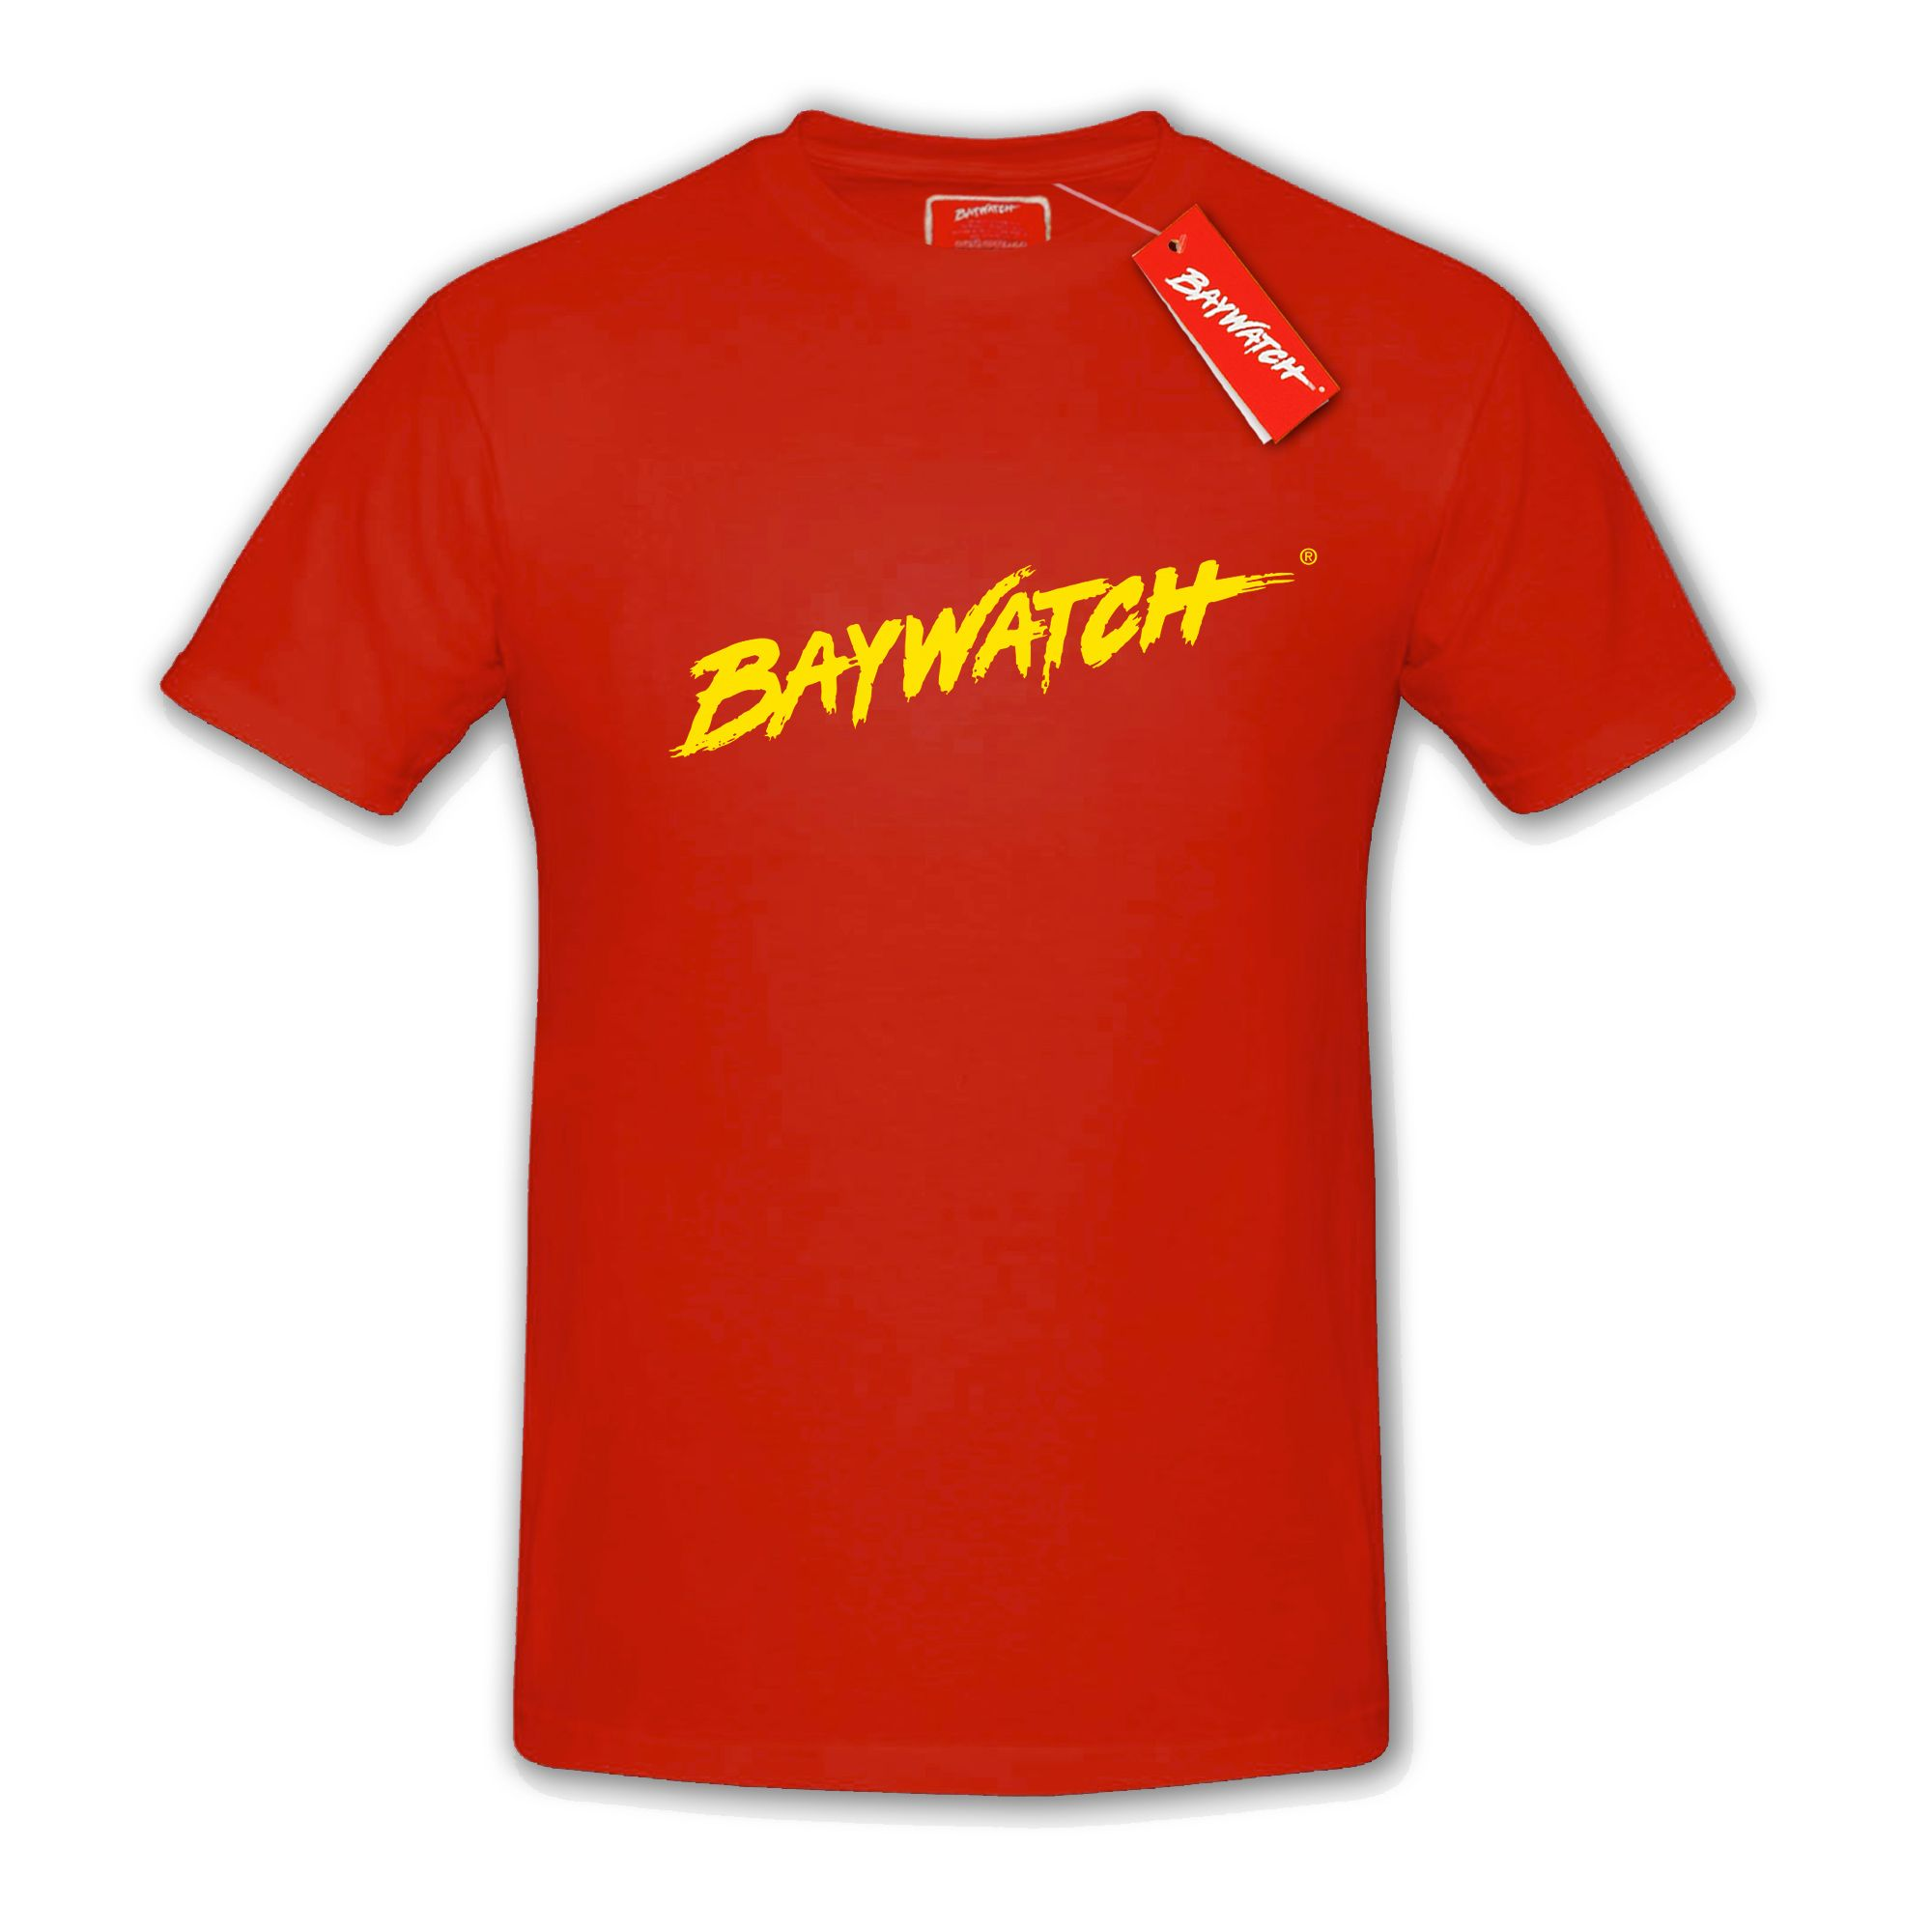 77528c80f8f LICENSED BAYWATCH ® RED T-SHIRT .